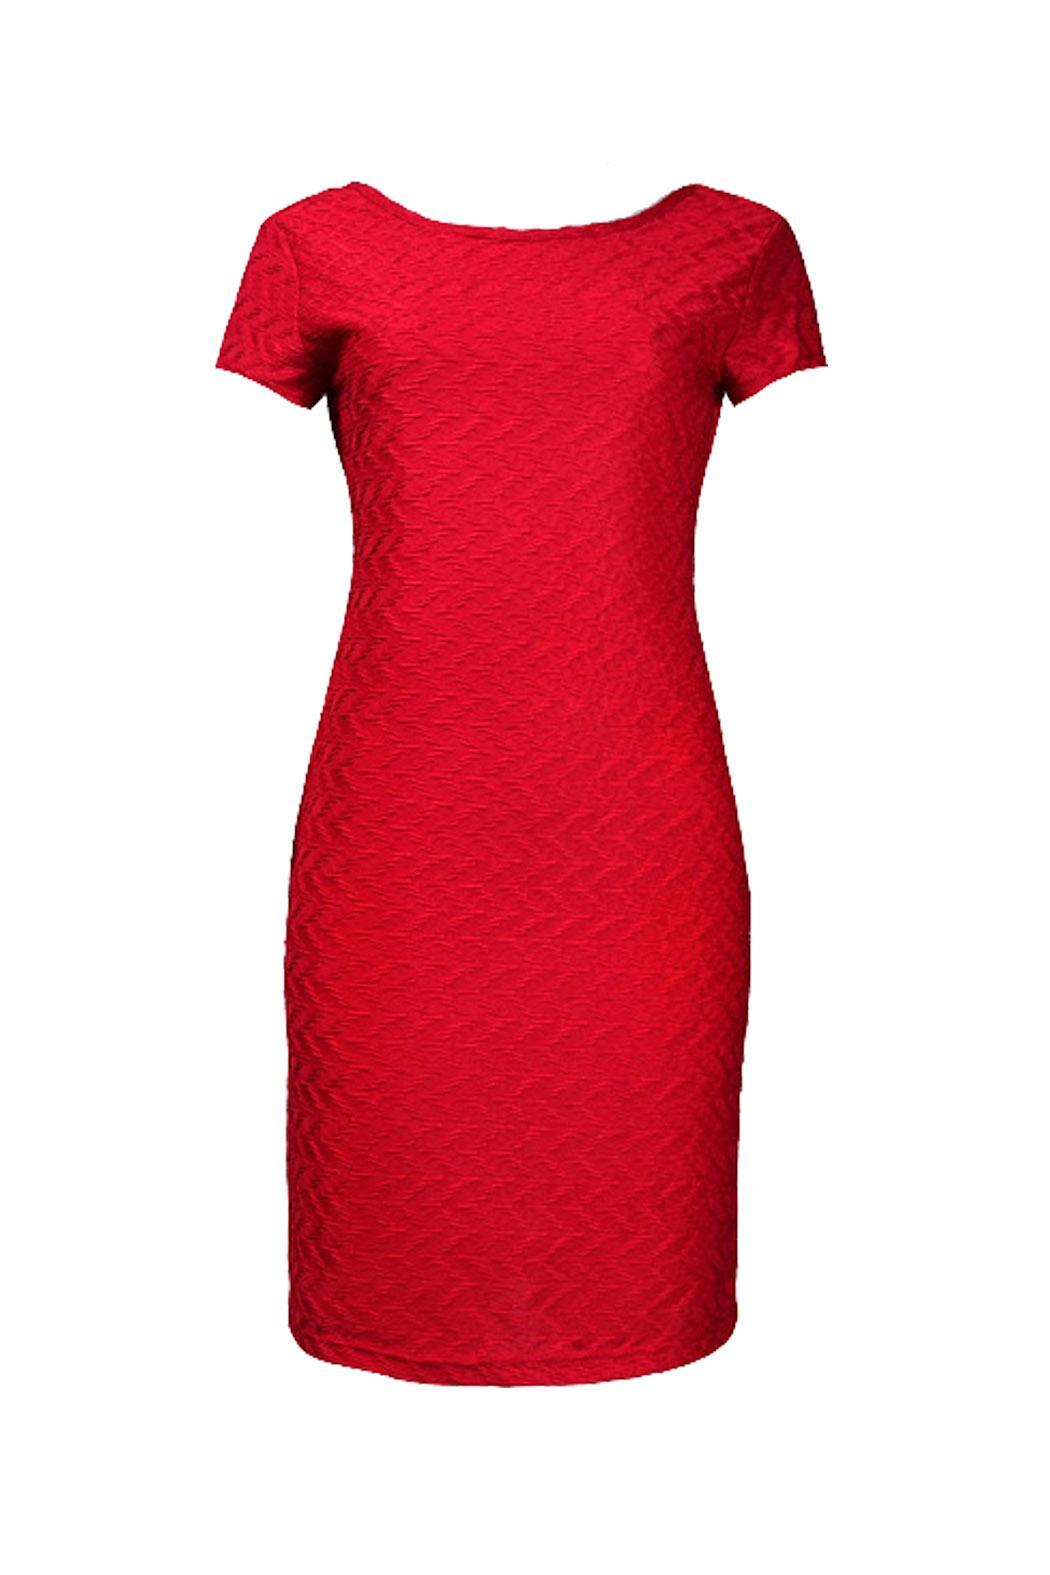 Sharagano Textured Jersey Dress From Maryland By Sosuku Boutique